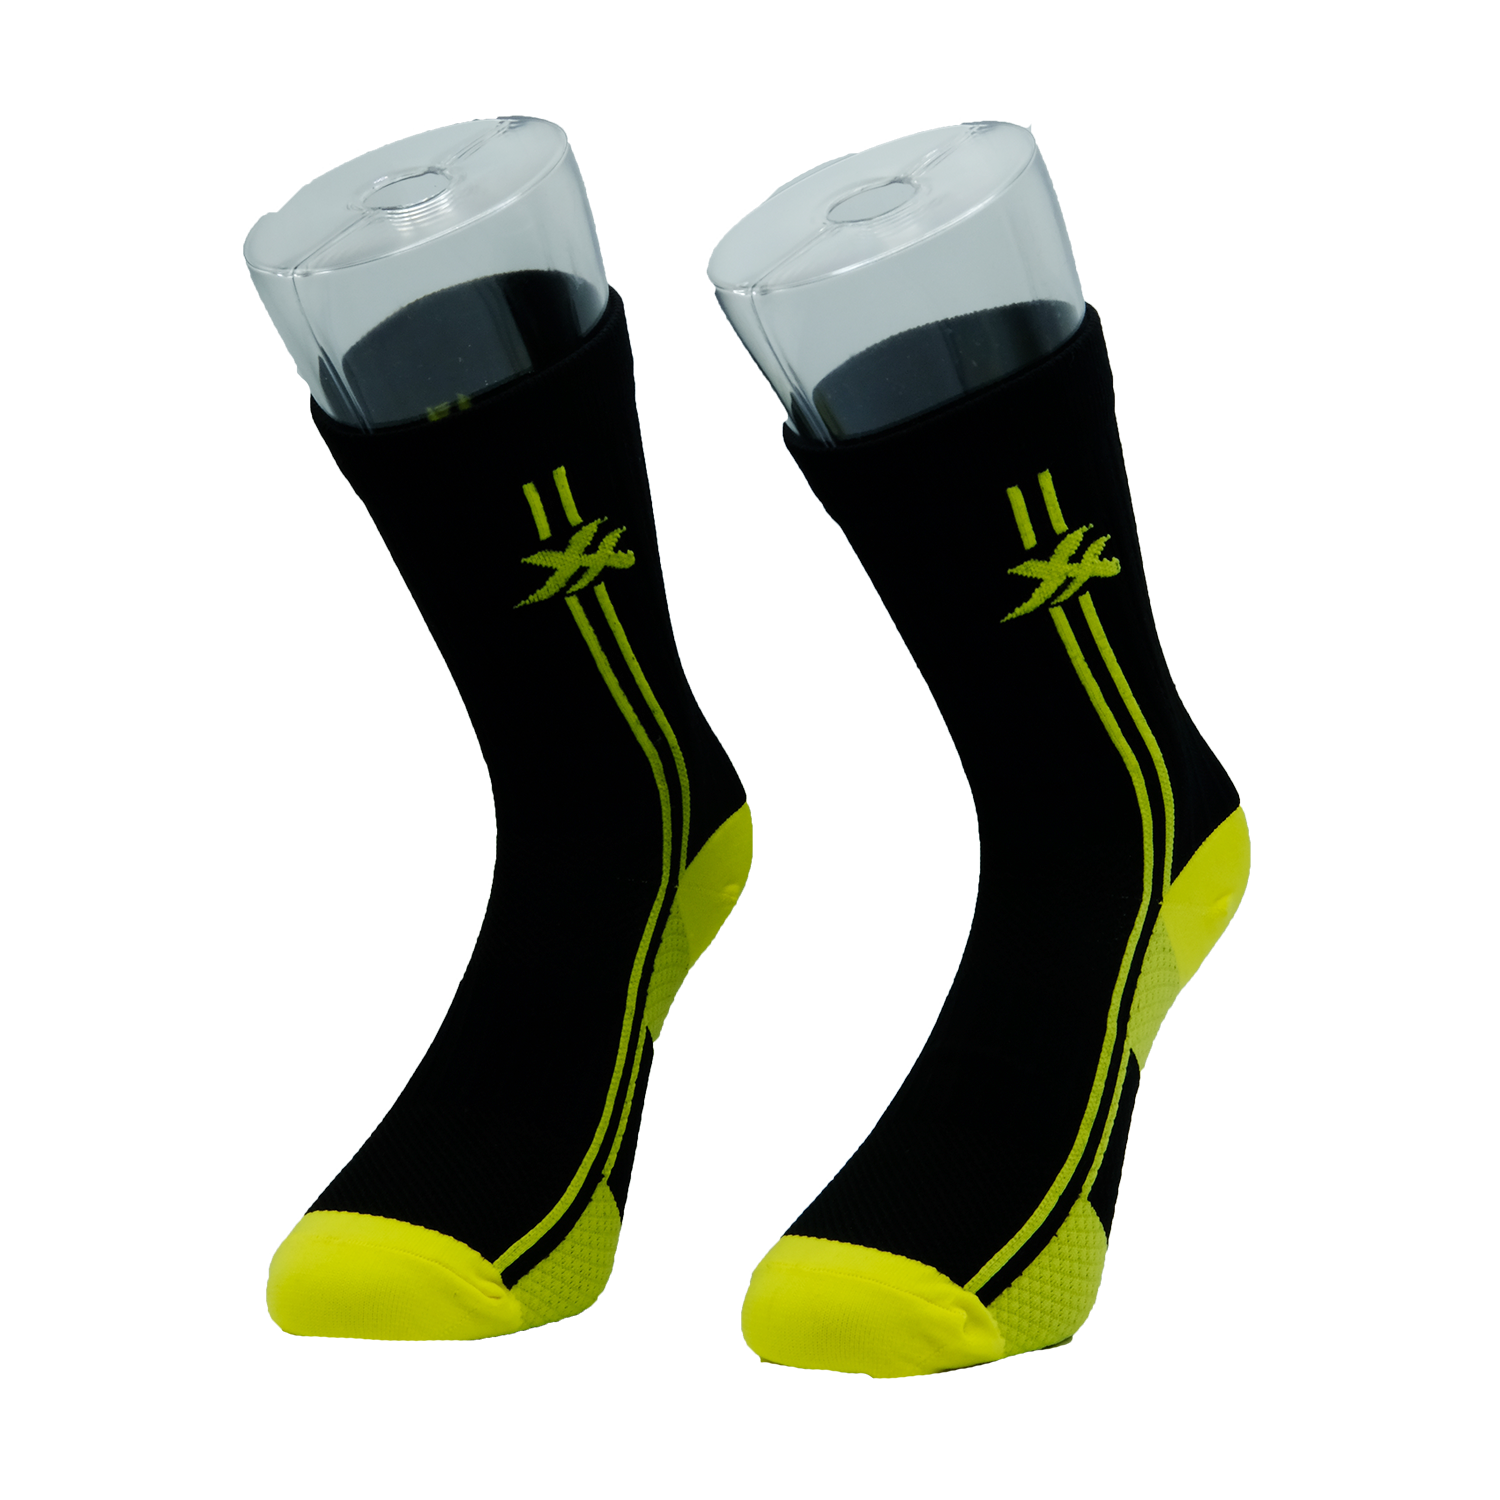 Walking Socks with company logo